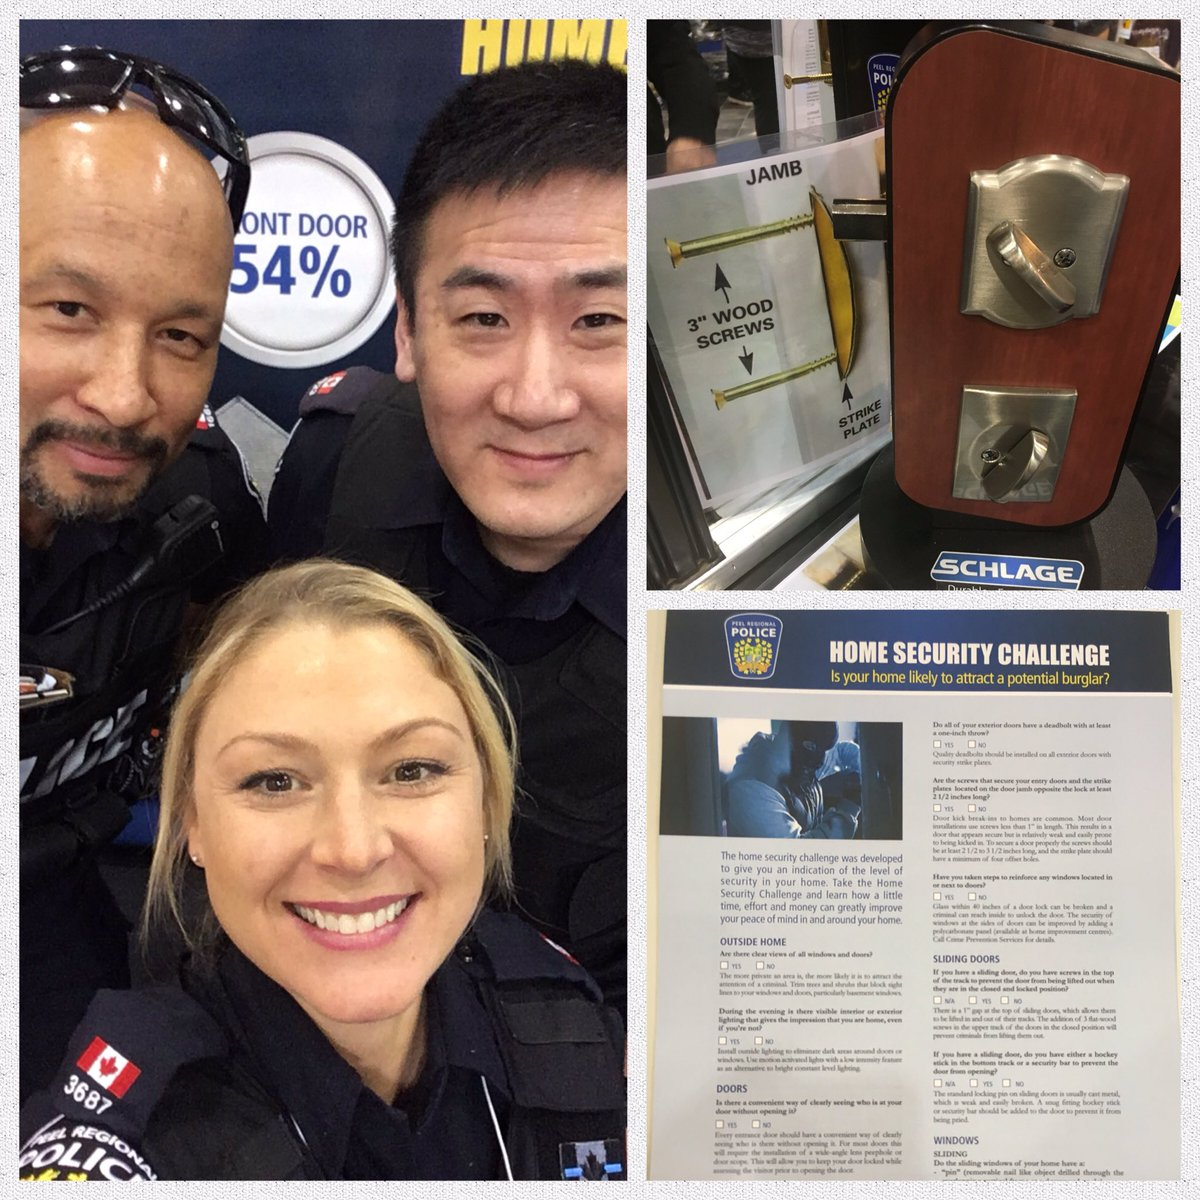 #GTAHomeShow here till 8pm and back tomorrow! Take our #HomeSecurity Challenge this weekend to better protect your home! @PeelPoliceMedia<br>http://pic.twitter.com/zKzQPKodu7